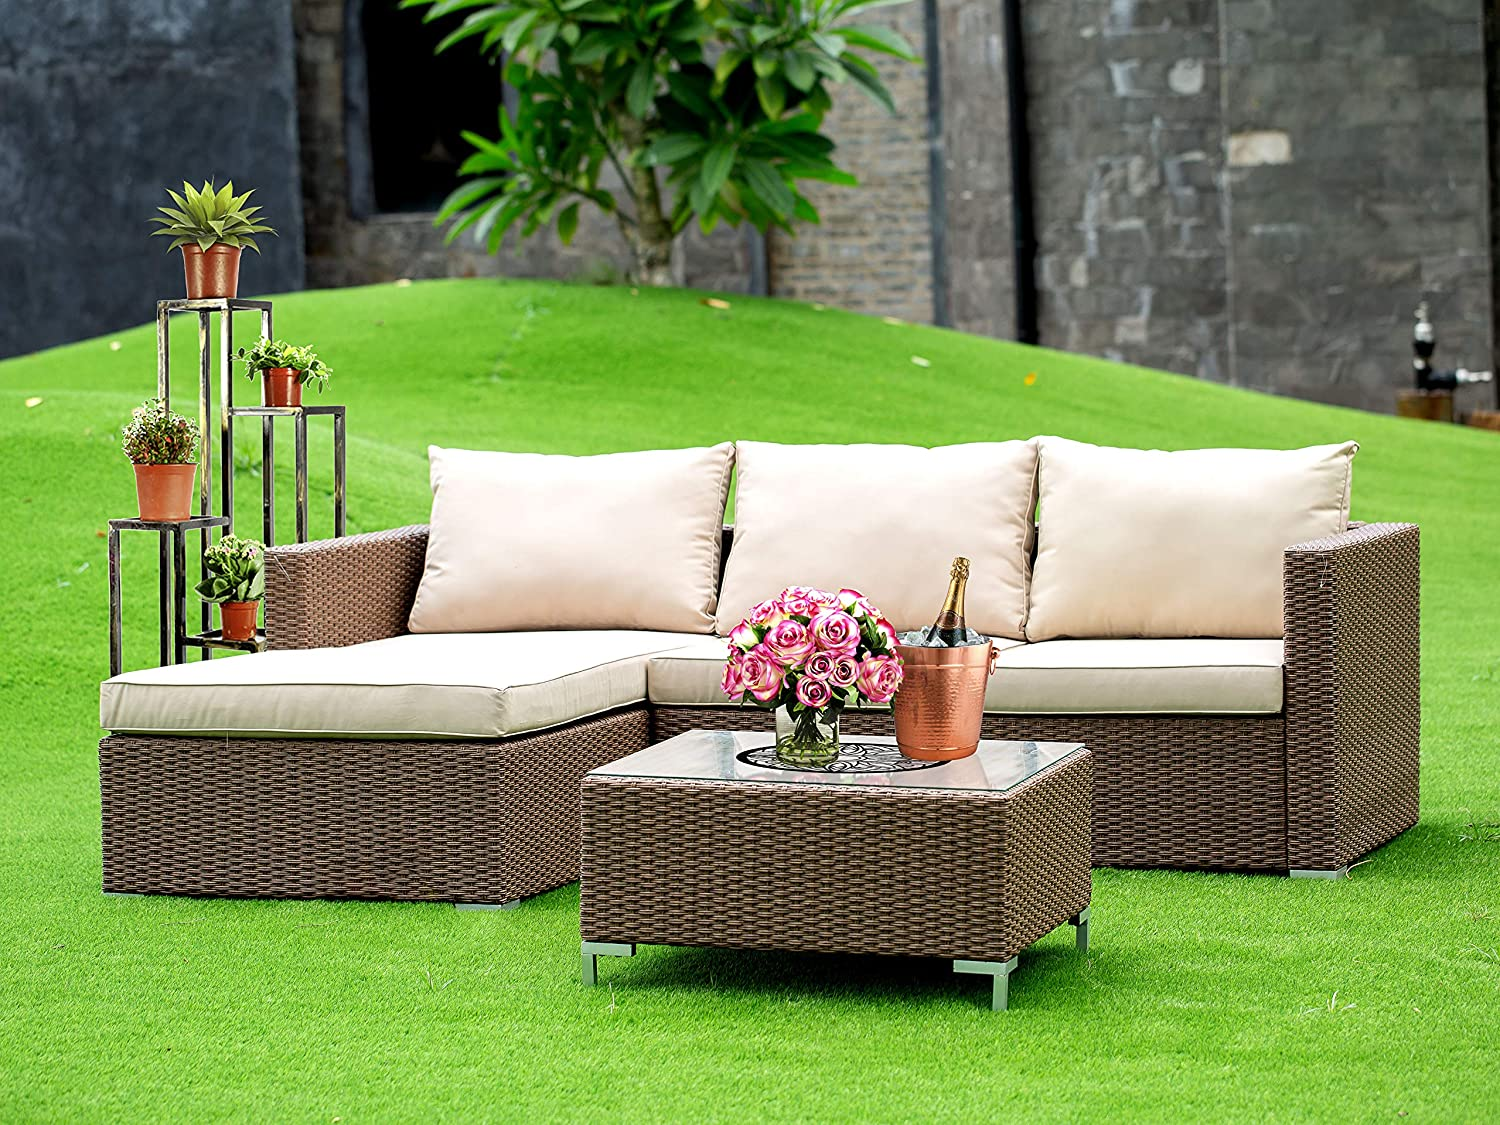 East West Furniture 3Pc Brown Wicker Outdoor Sectional Sofa Set Includes a Patio Table and Linen Fabric Cushion